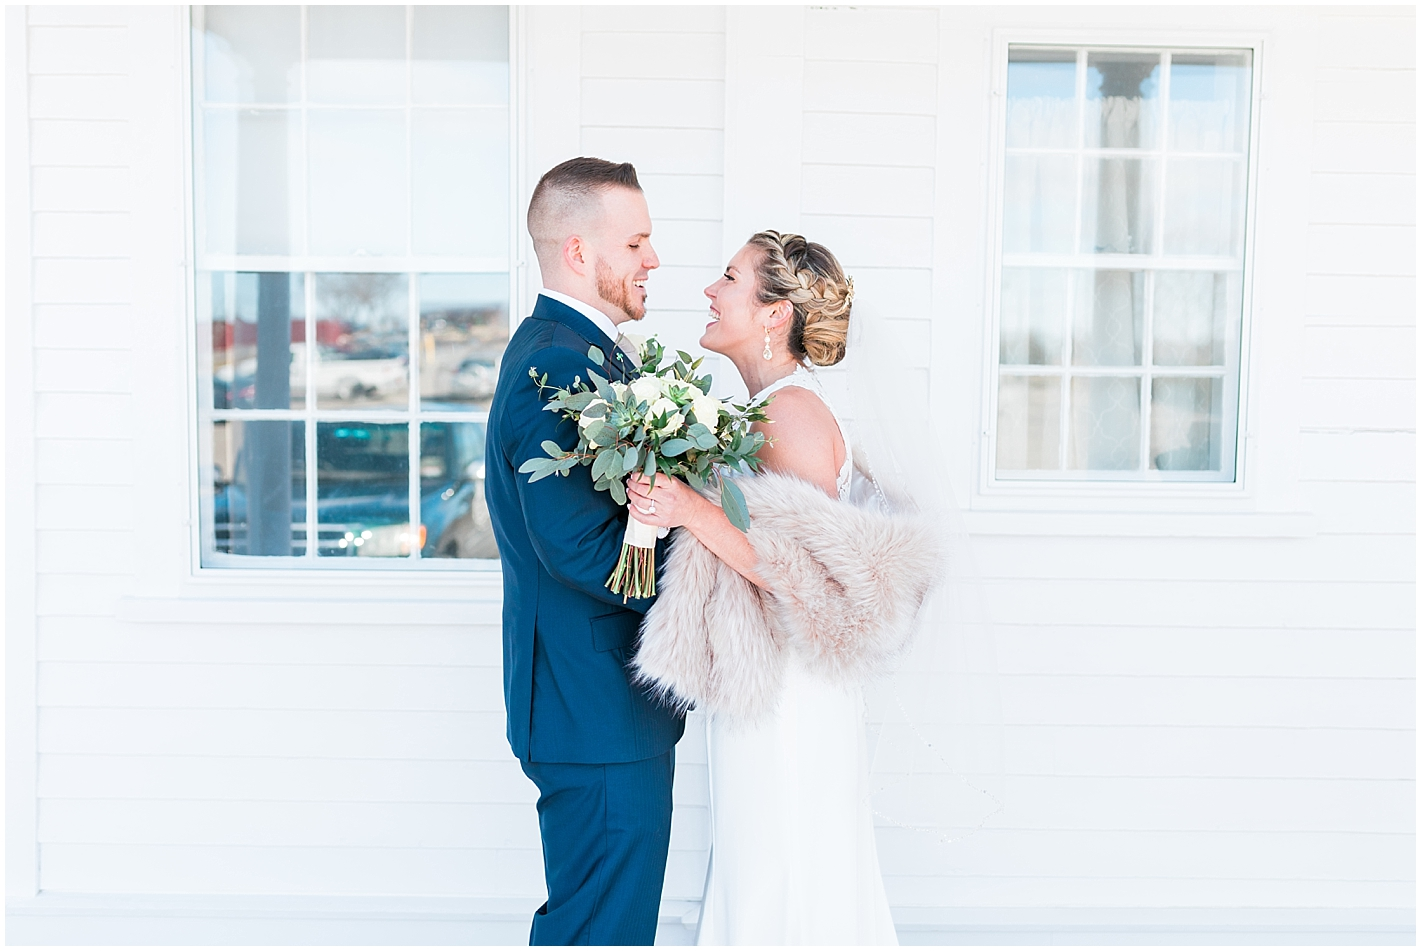 light and airy wedding Photos by Alyssa Parker Photography